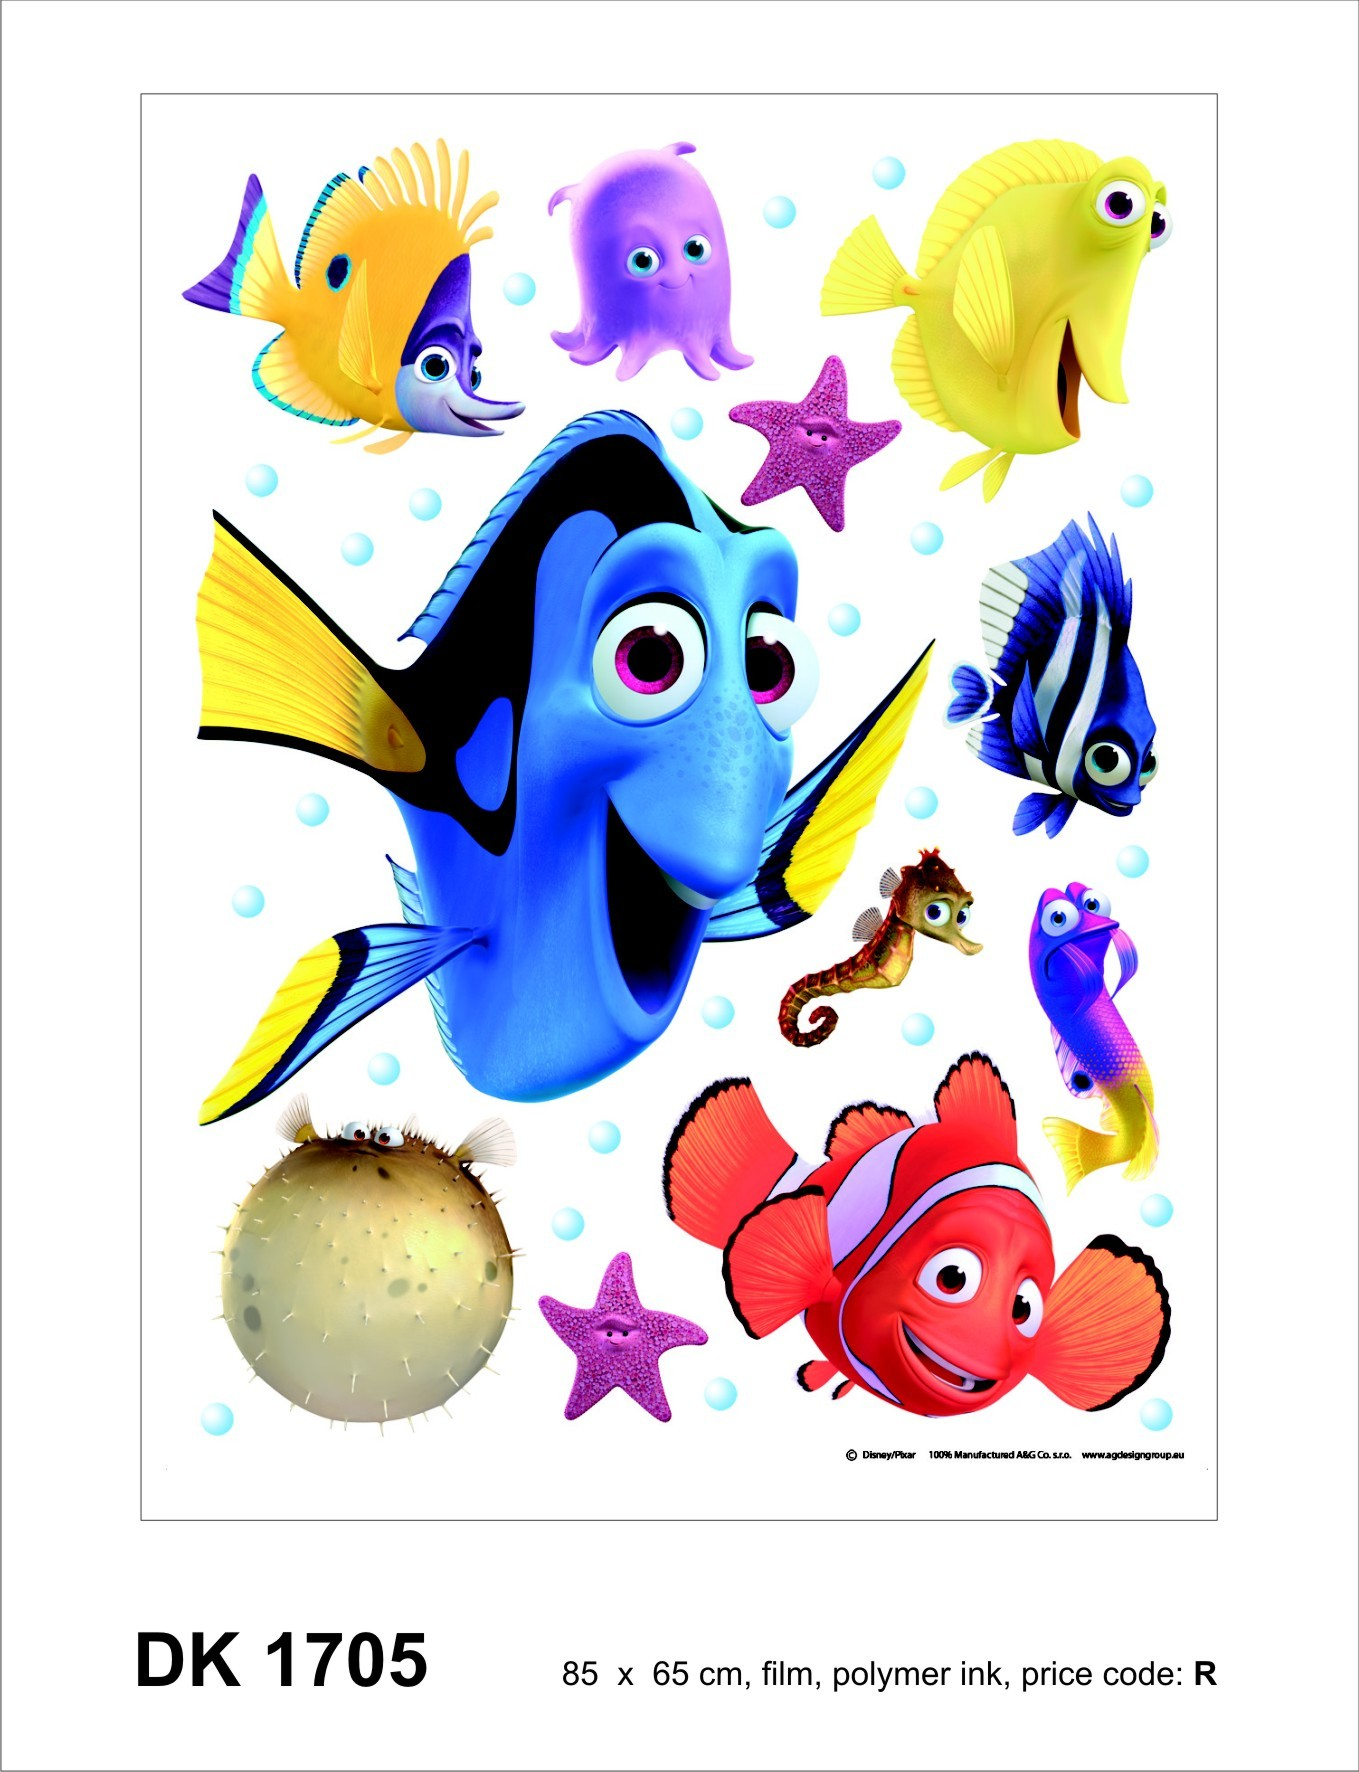 Kinder wandsticker wandtattoo kinderdeko findet nemo for Kinder wandsticker